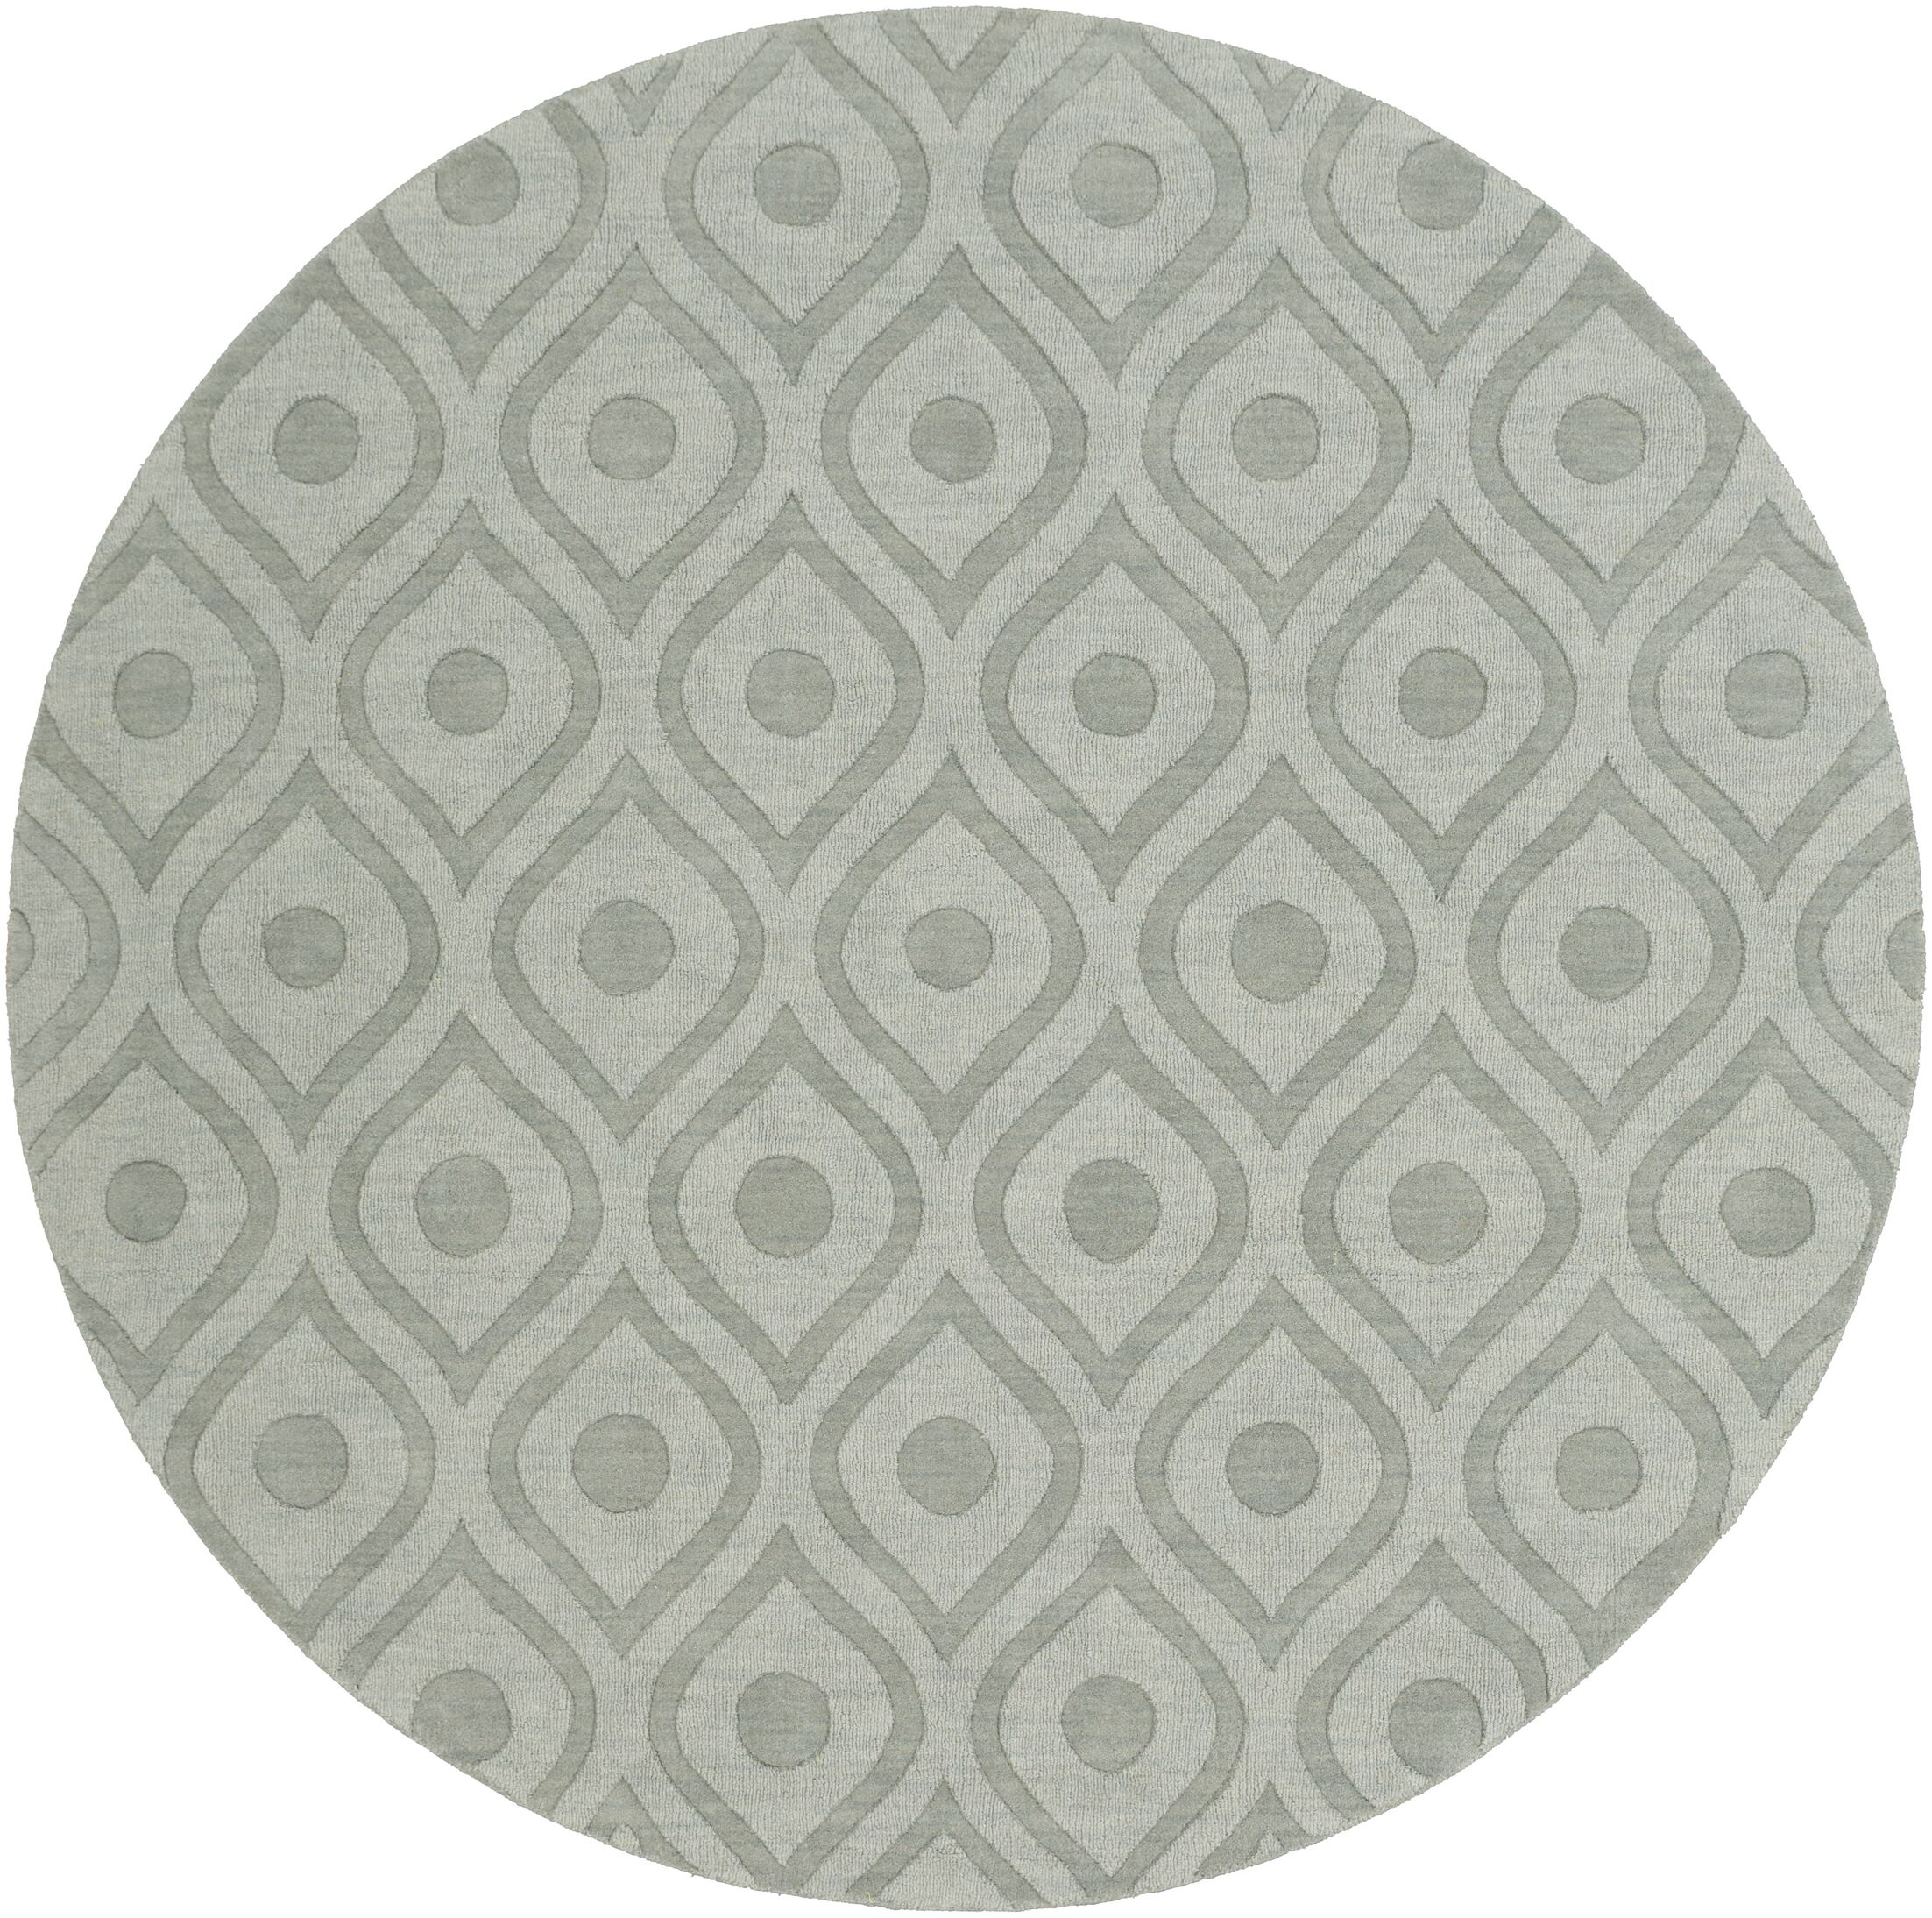 Castro Hand Woven Wool Blue-Gray Area Rug Rug Size: Round 7'9